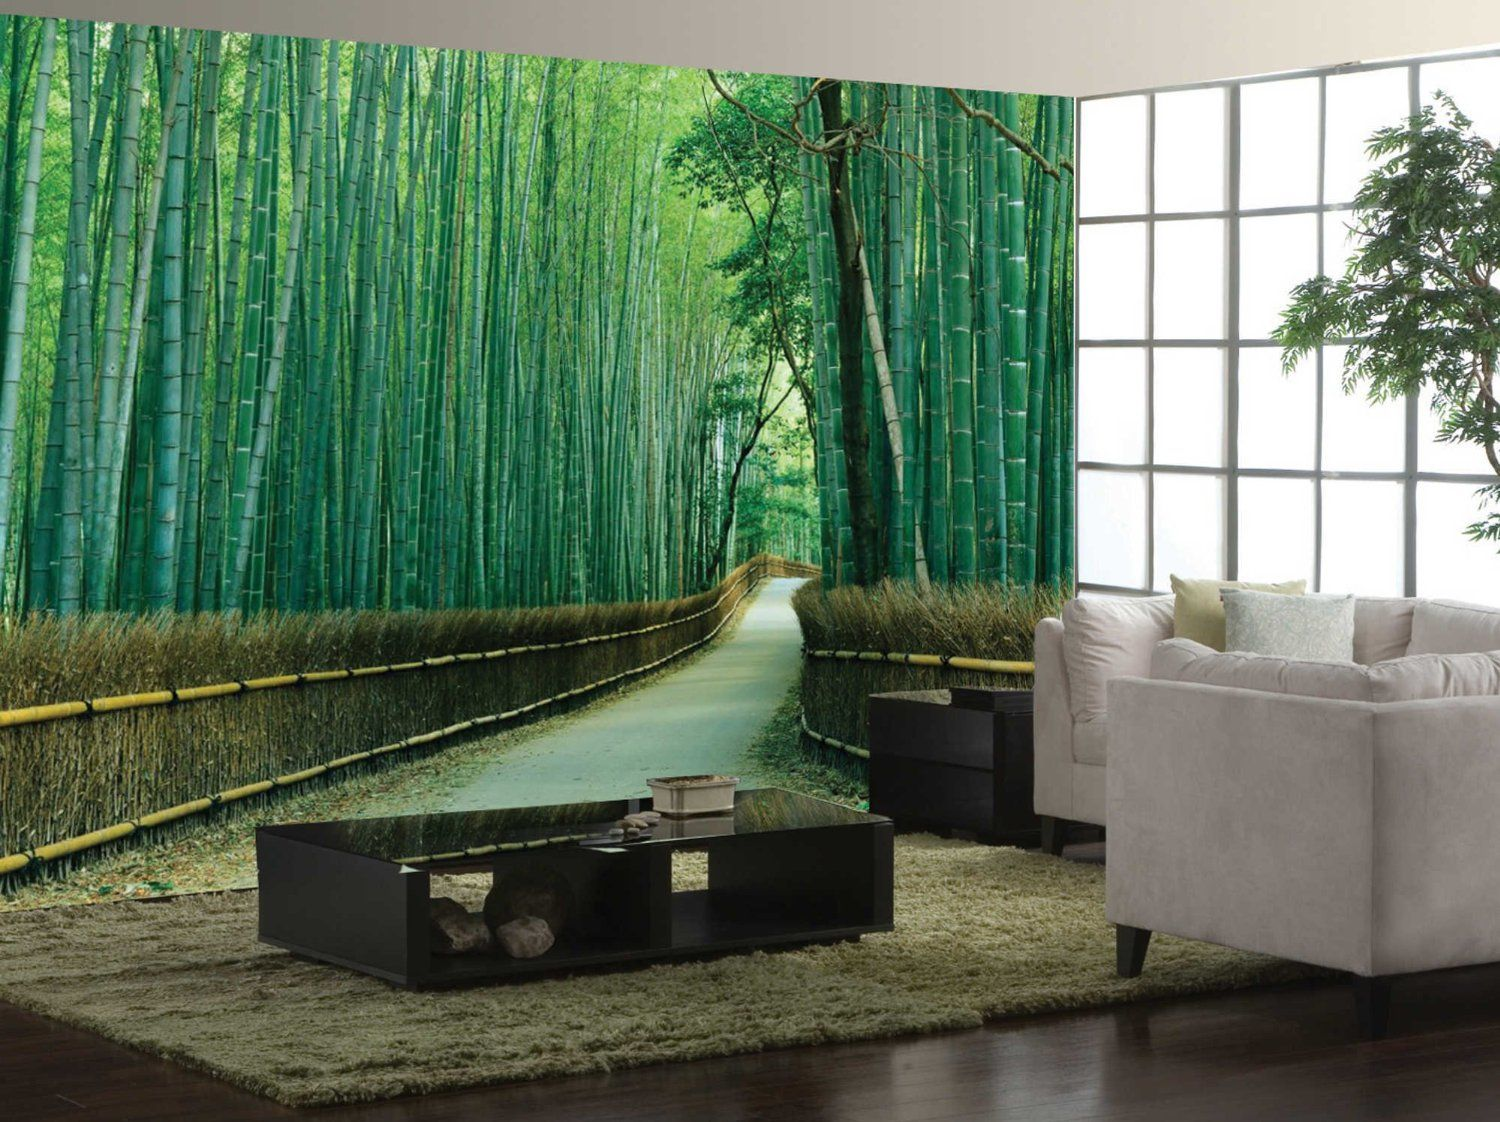 Forest Room Interior Design Important Wallpapers Corey